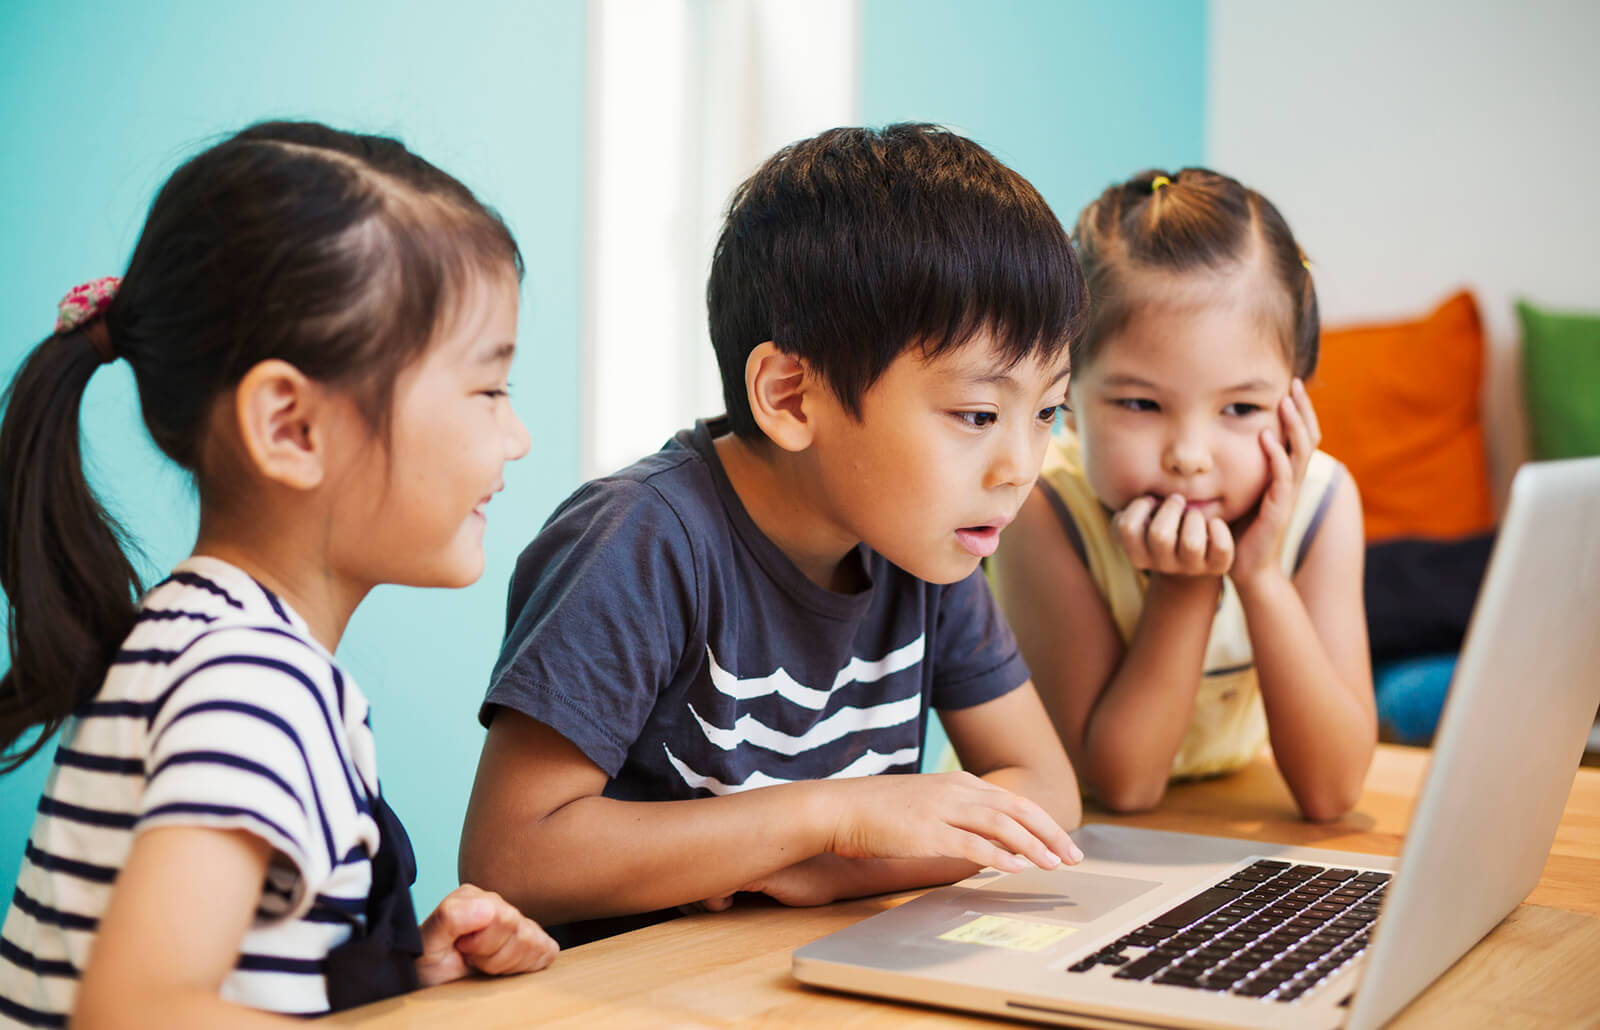 Introducing Kids to Basic Computer Skills